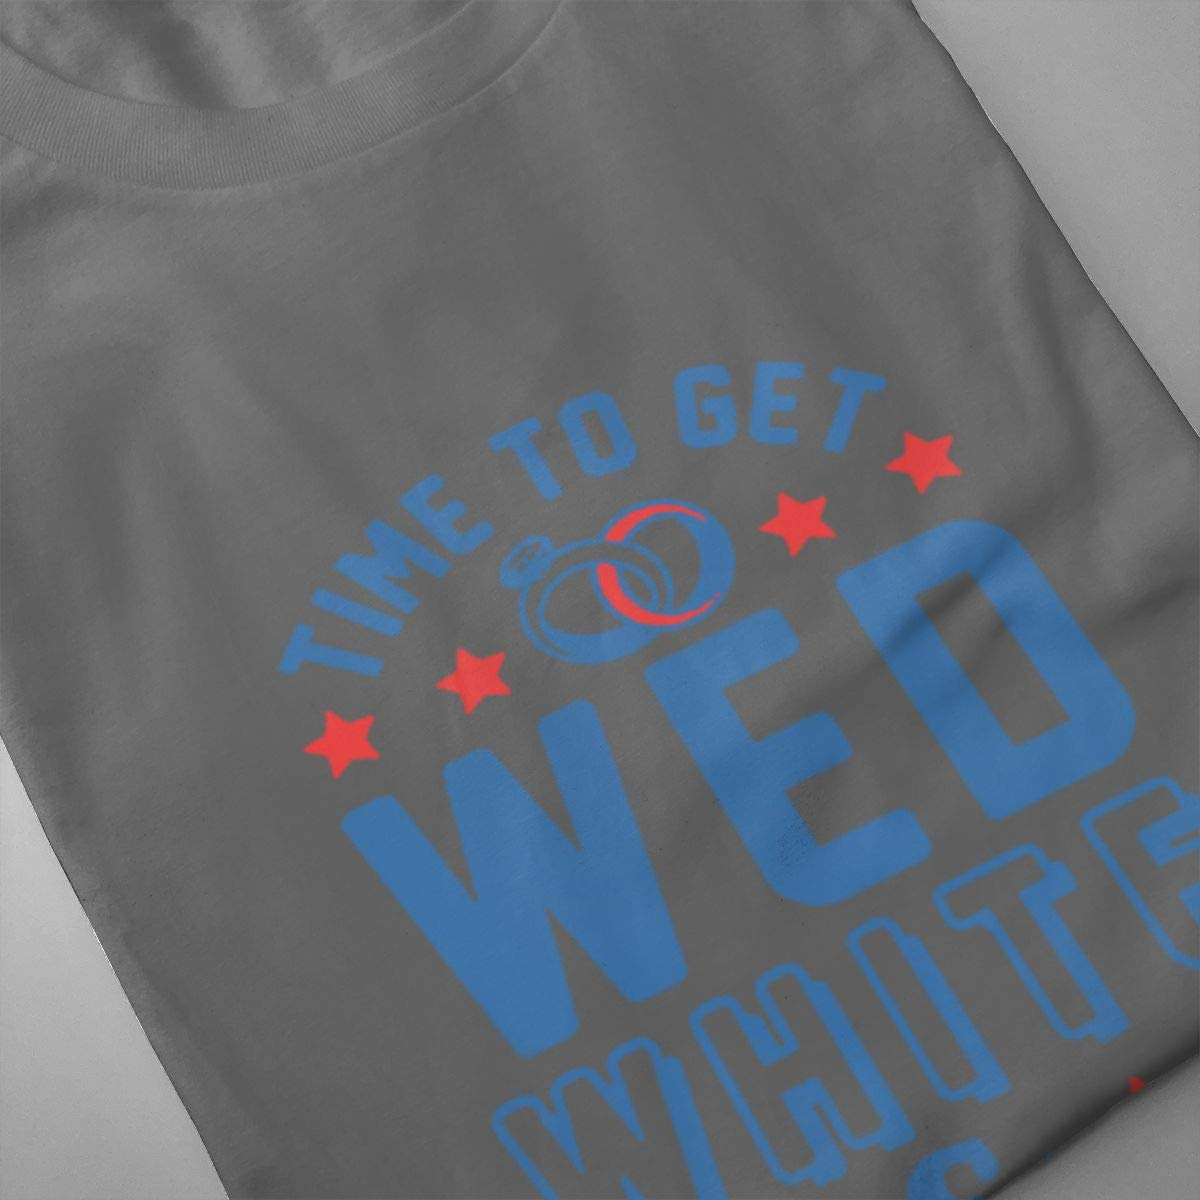 Seuriamin Time to Get Wed White /& Boozed Men Humor Running Short Sleeve T-Shirt